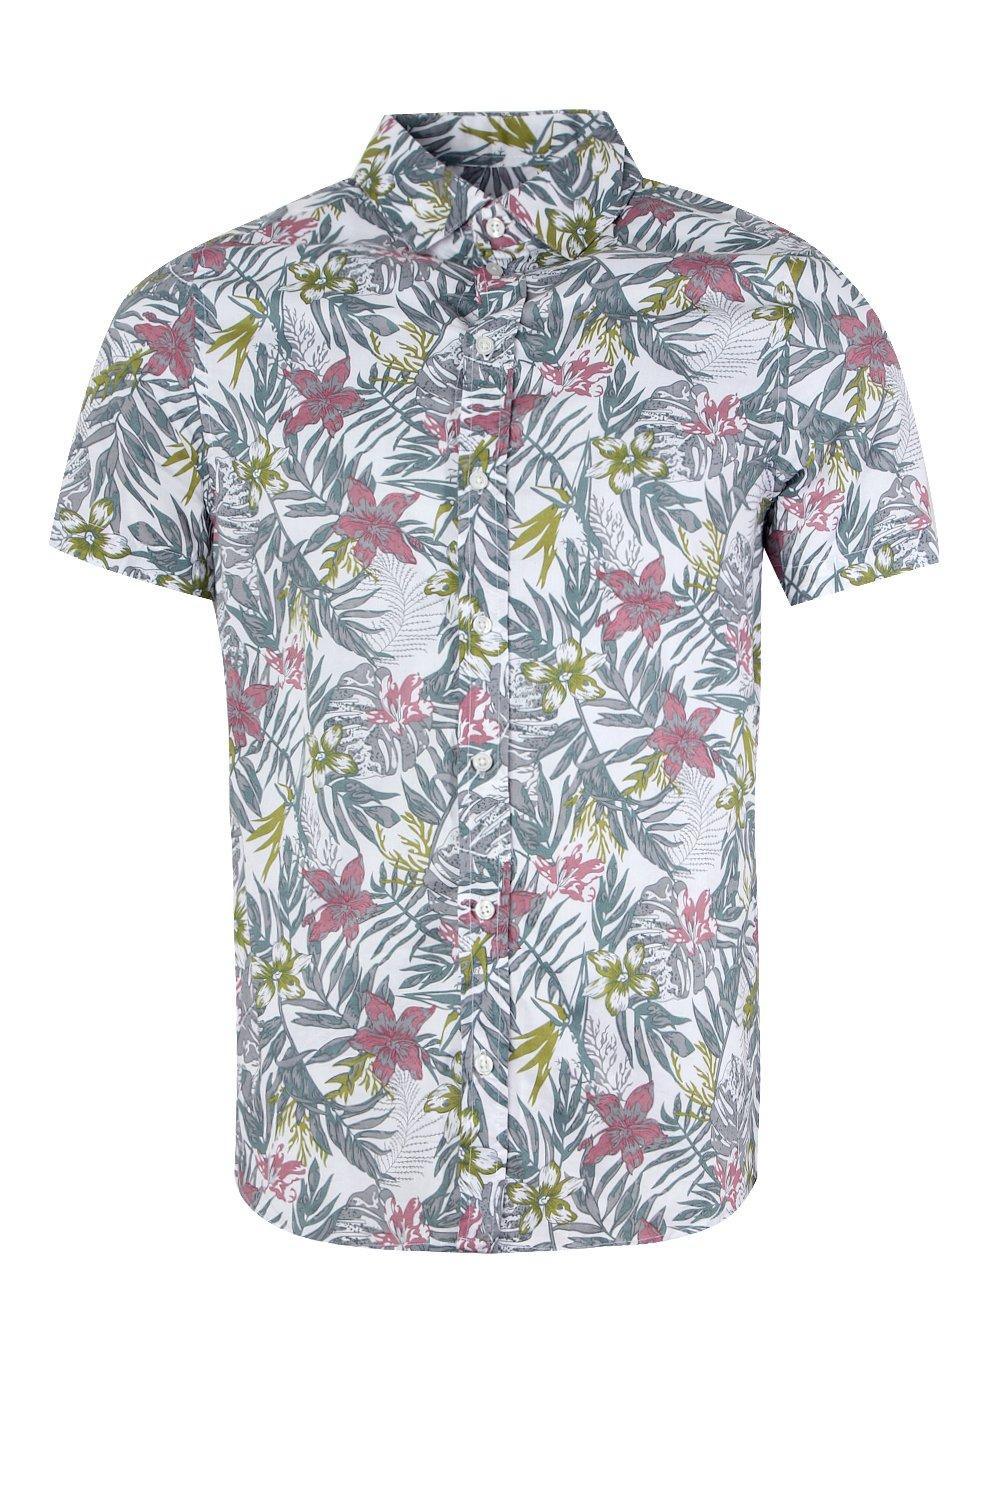 boohooMAN mint Floral Leaf Print Short Sleeve Shirt